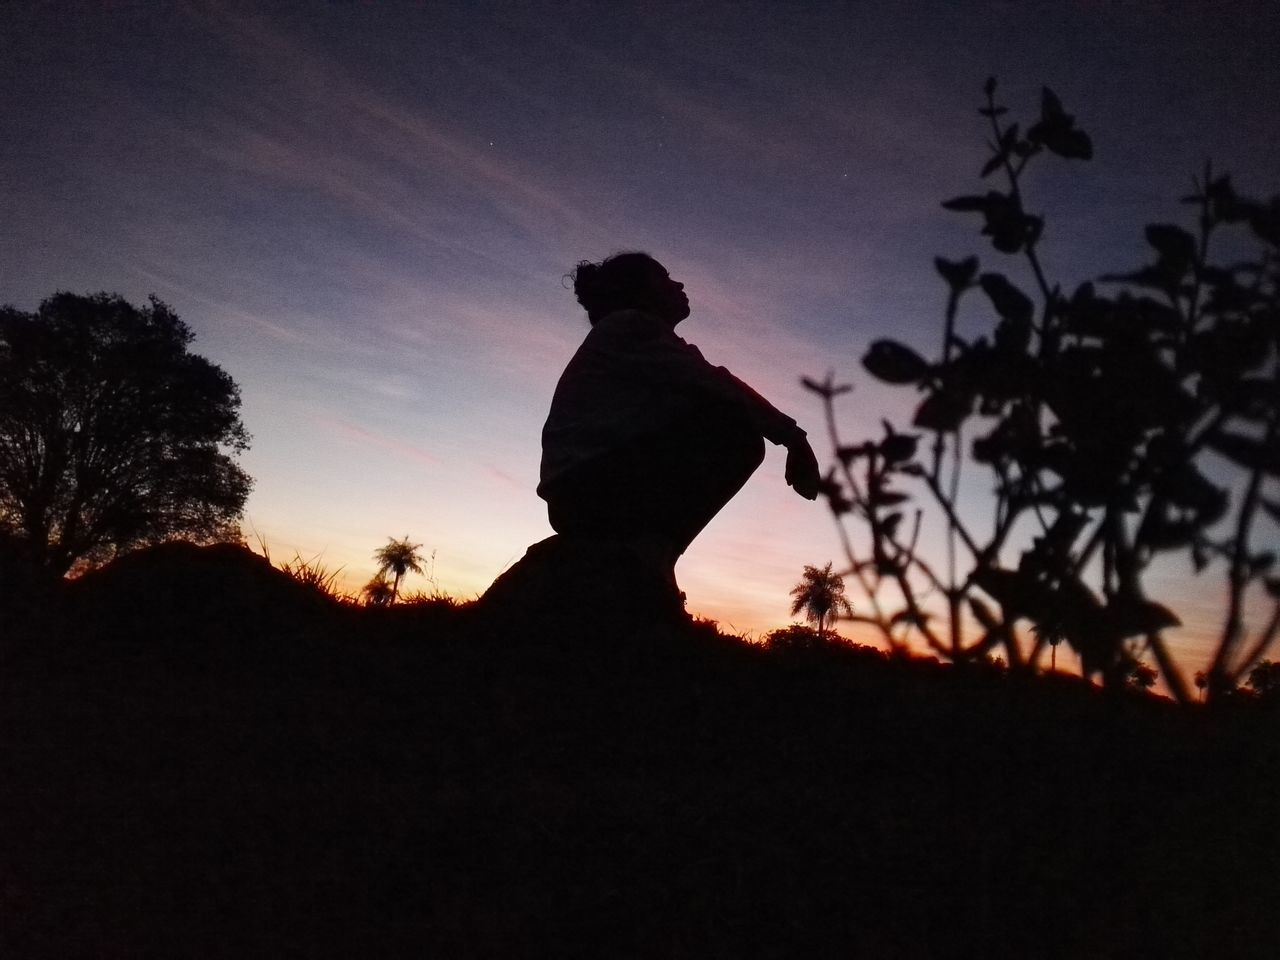 silhouette, sunset, real people, one person, nature, beauty in nature, sky, tranquility, tranquil scene, leisure activity, side view, outdoors, landscape, full length, standing, scenics, lifestyles, men, tree, day, people